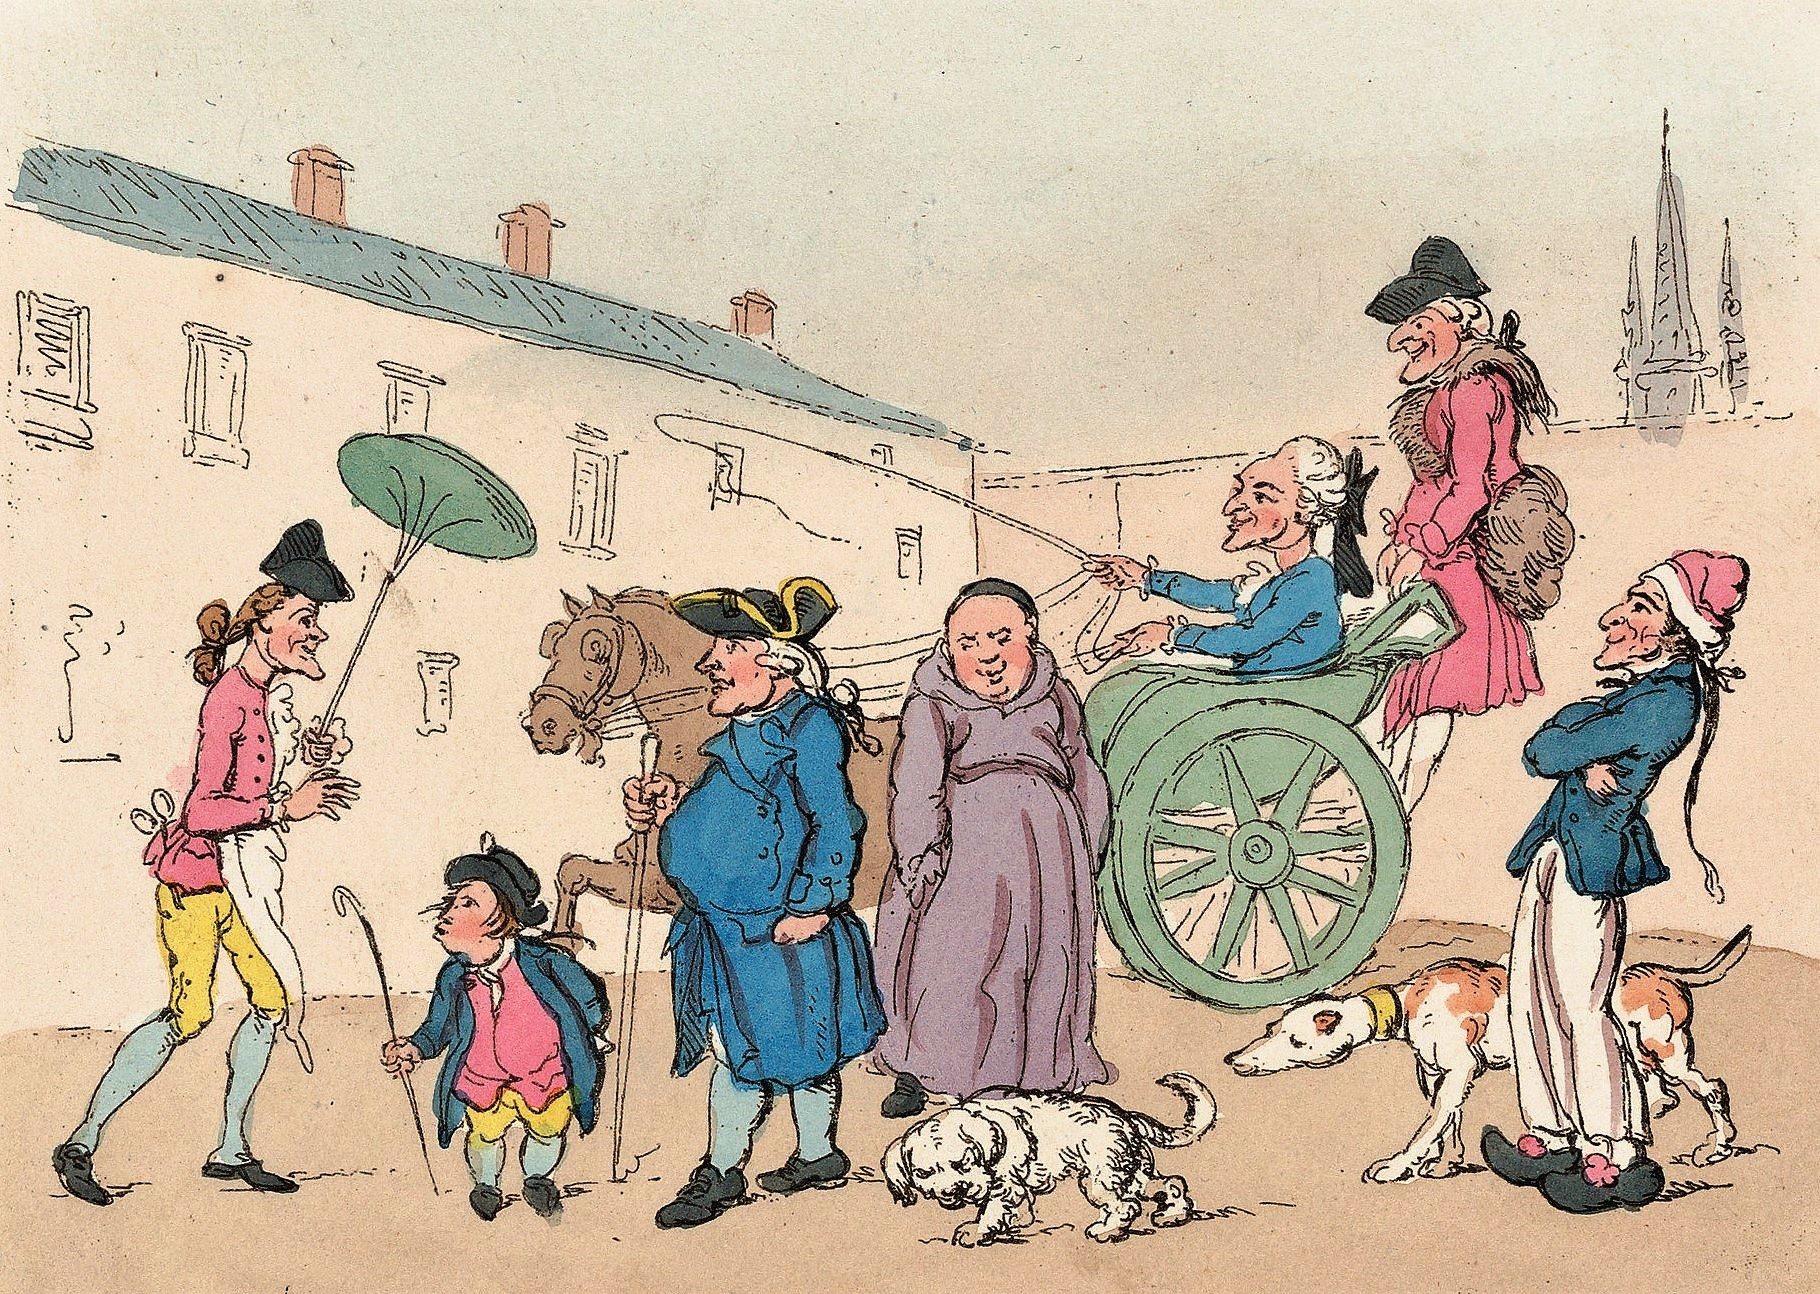 Paris, considered the greatest city in 18th-century Europe, was usually the first stop on the Grand Tour, as depicted in this satirical print, Englishman at Paris, after W H Bunbury, 1767 